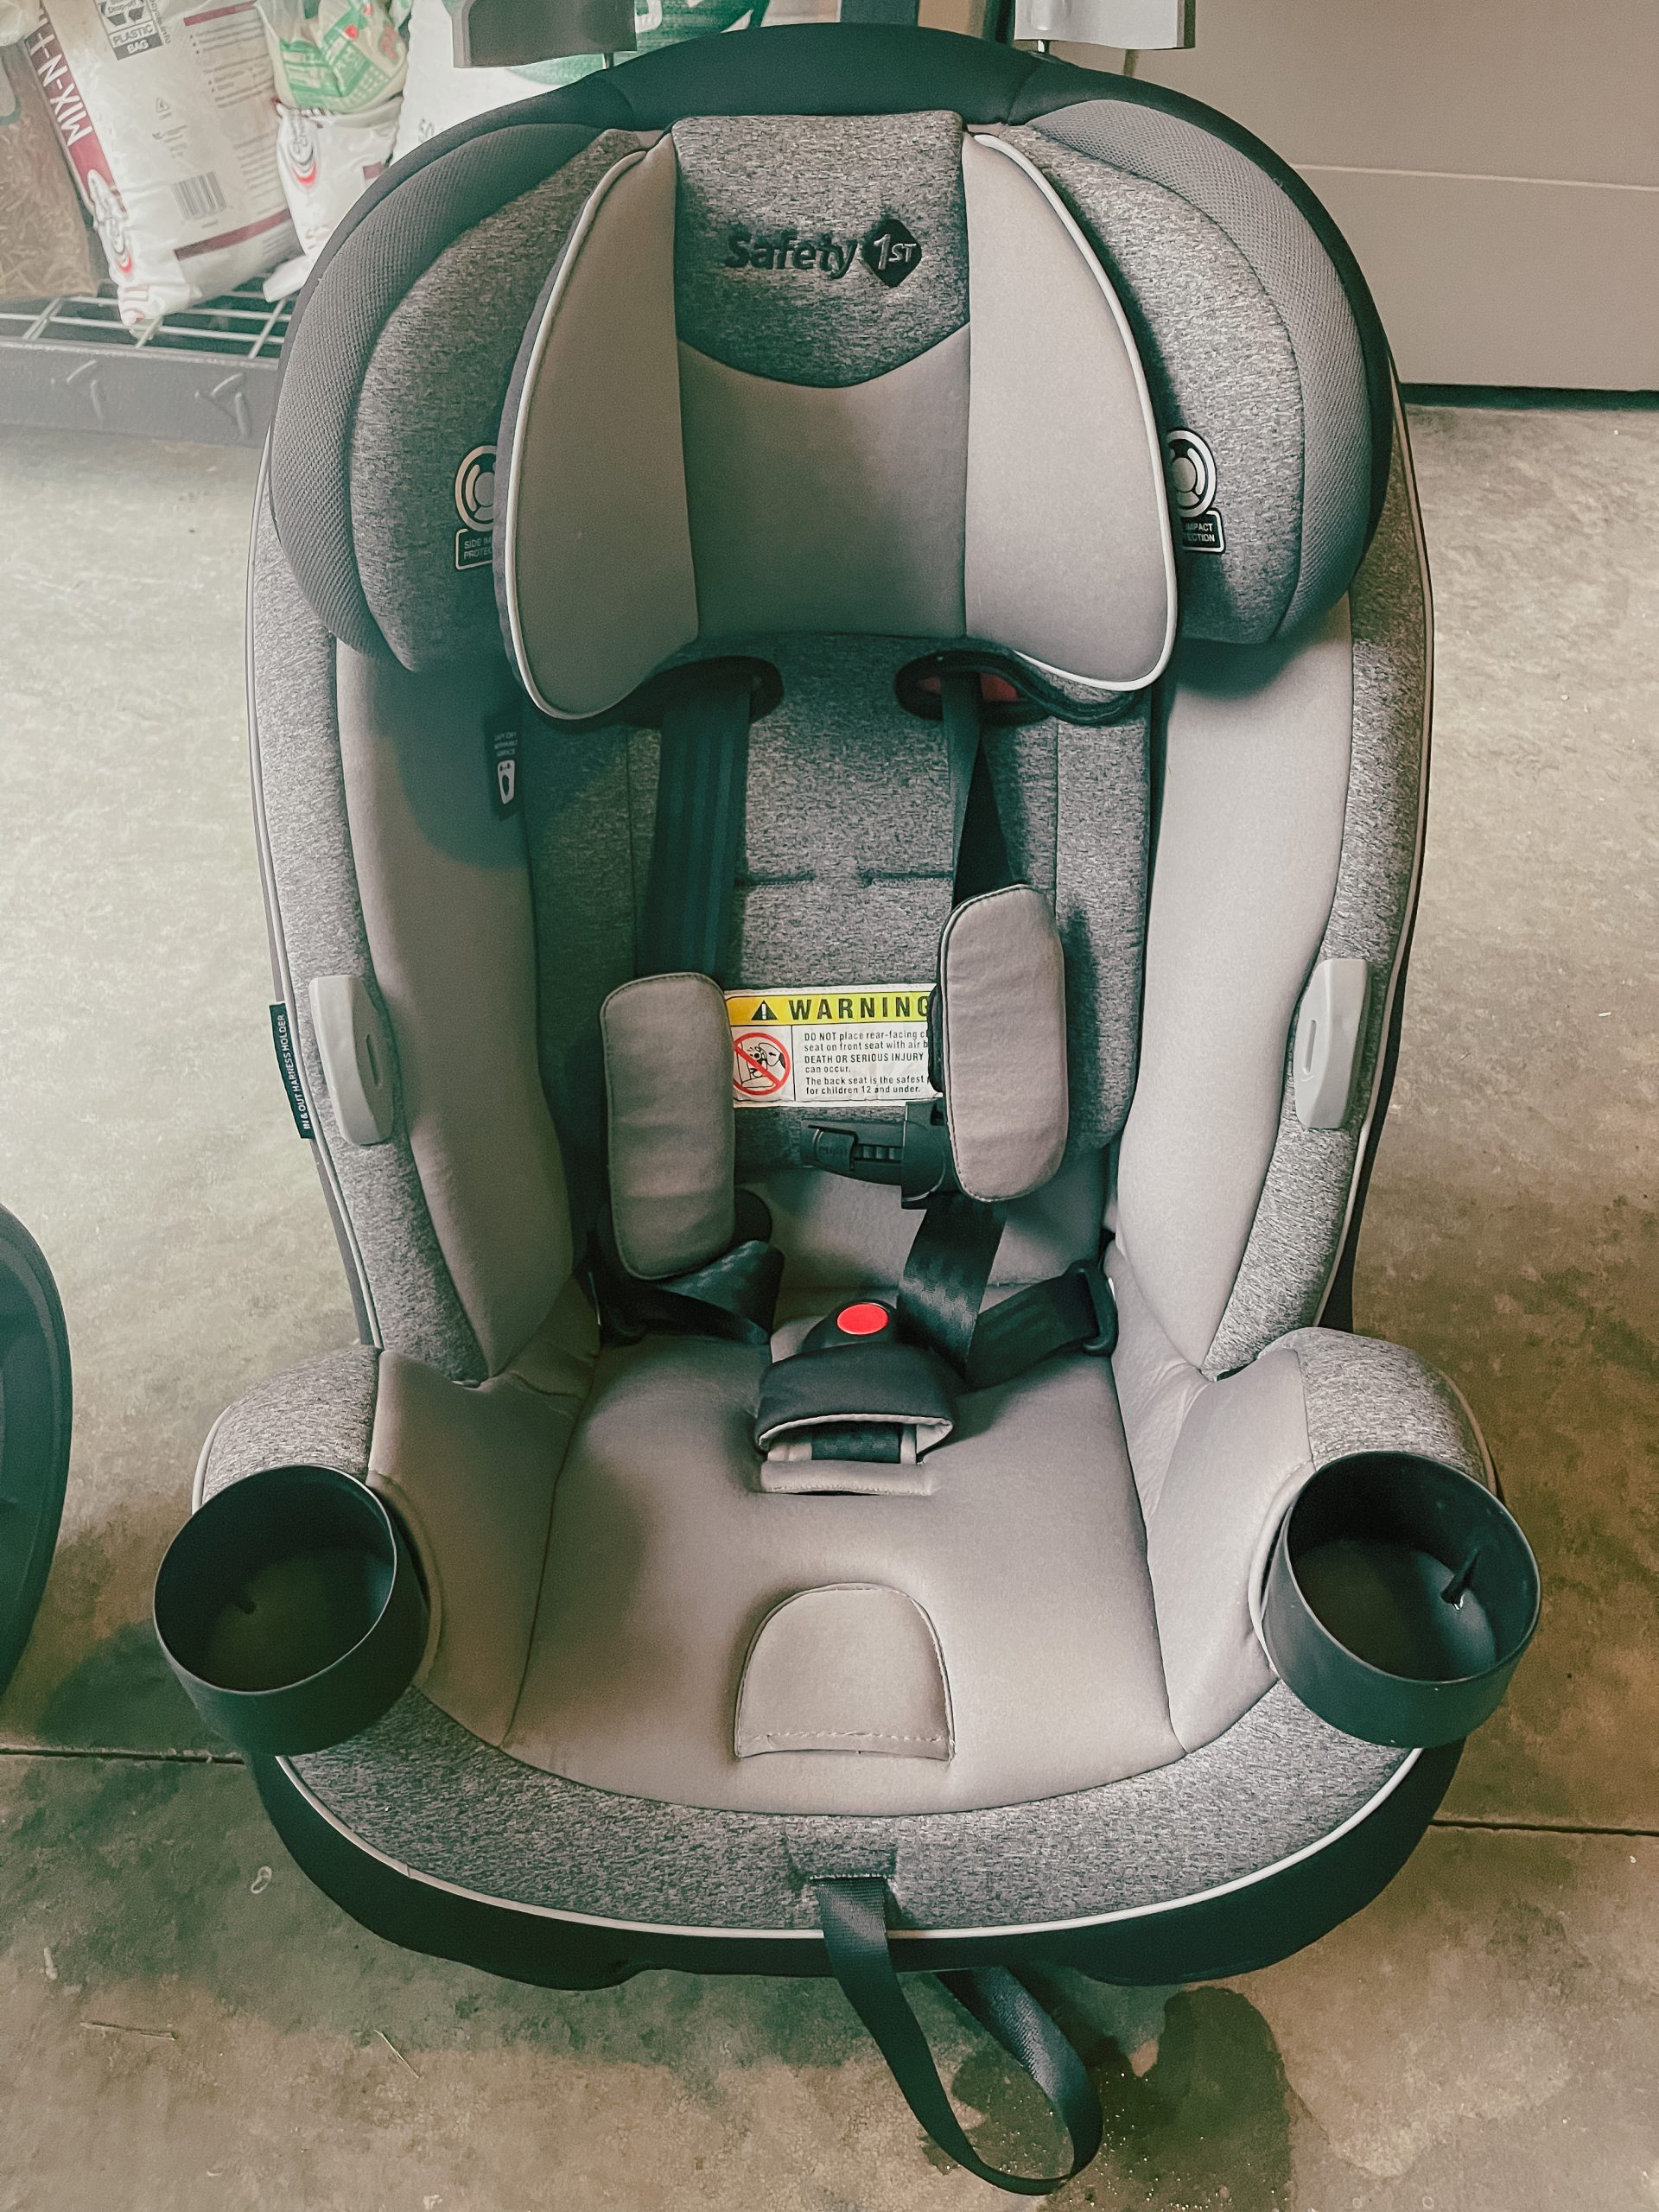 Safety 1st Jive 2-in-1 Convertible Car Seat, Harvest Moon Amazom toddler seat review Angela MacKenlee Lanter